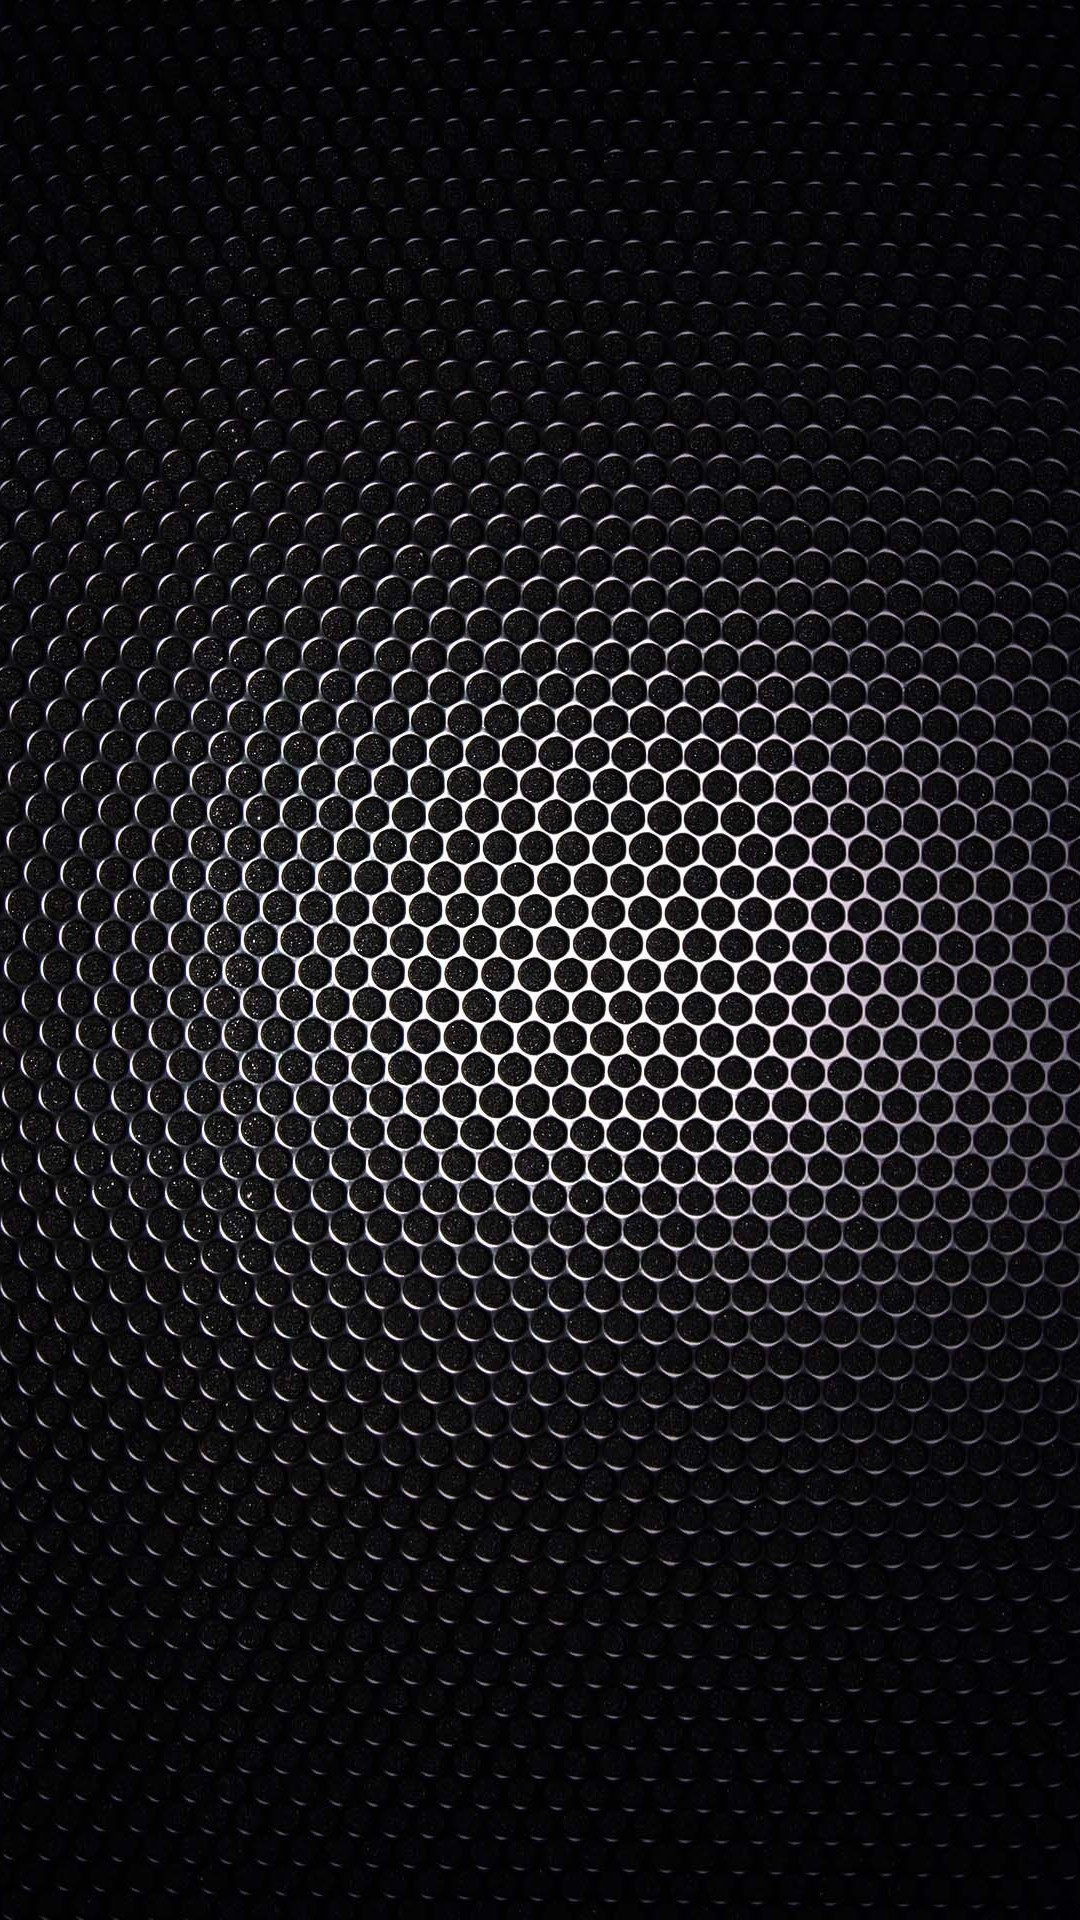 Hd Wallpaper For Galaxy S4 76 Images